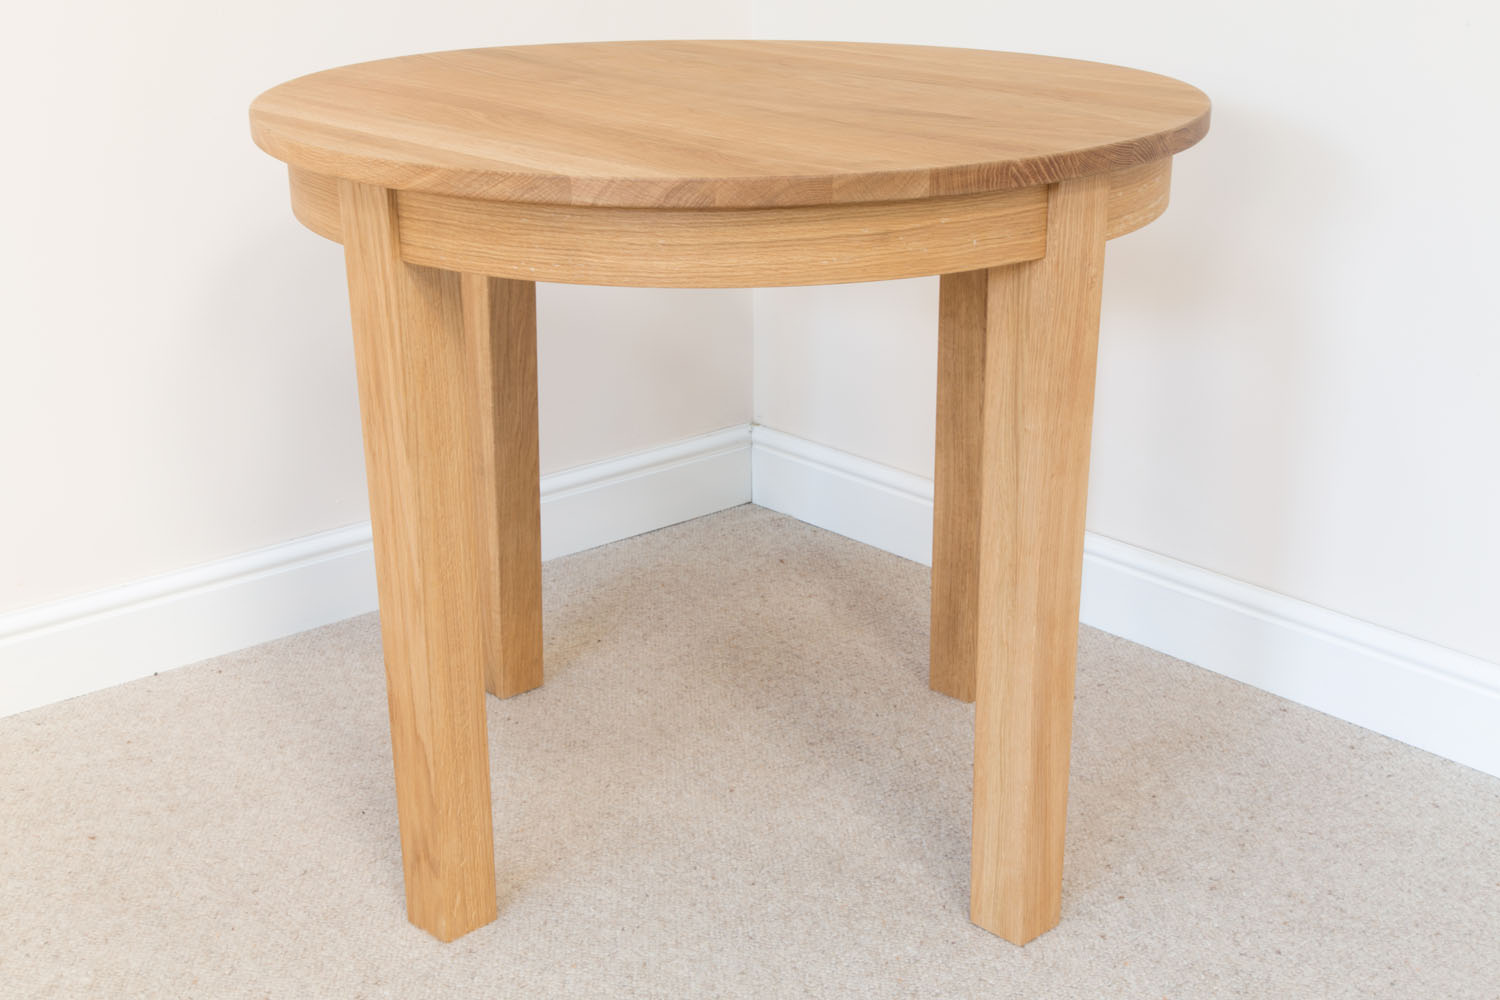 Round Oak Dining Table Round Solid European Oak Dining Table 90cm Baltic Premium